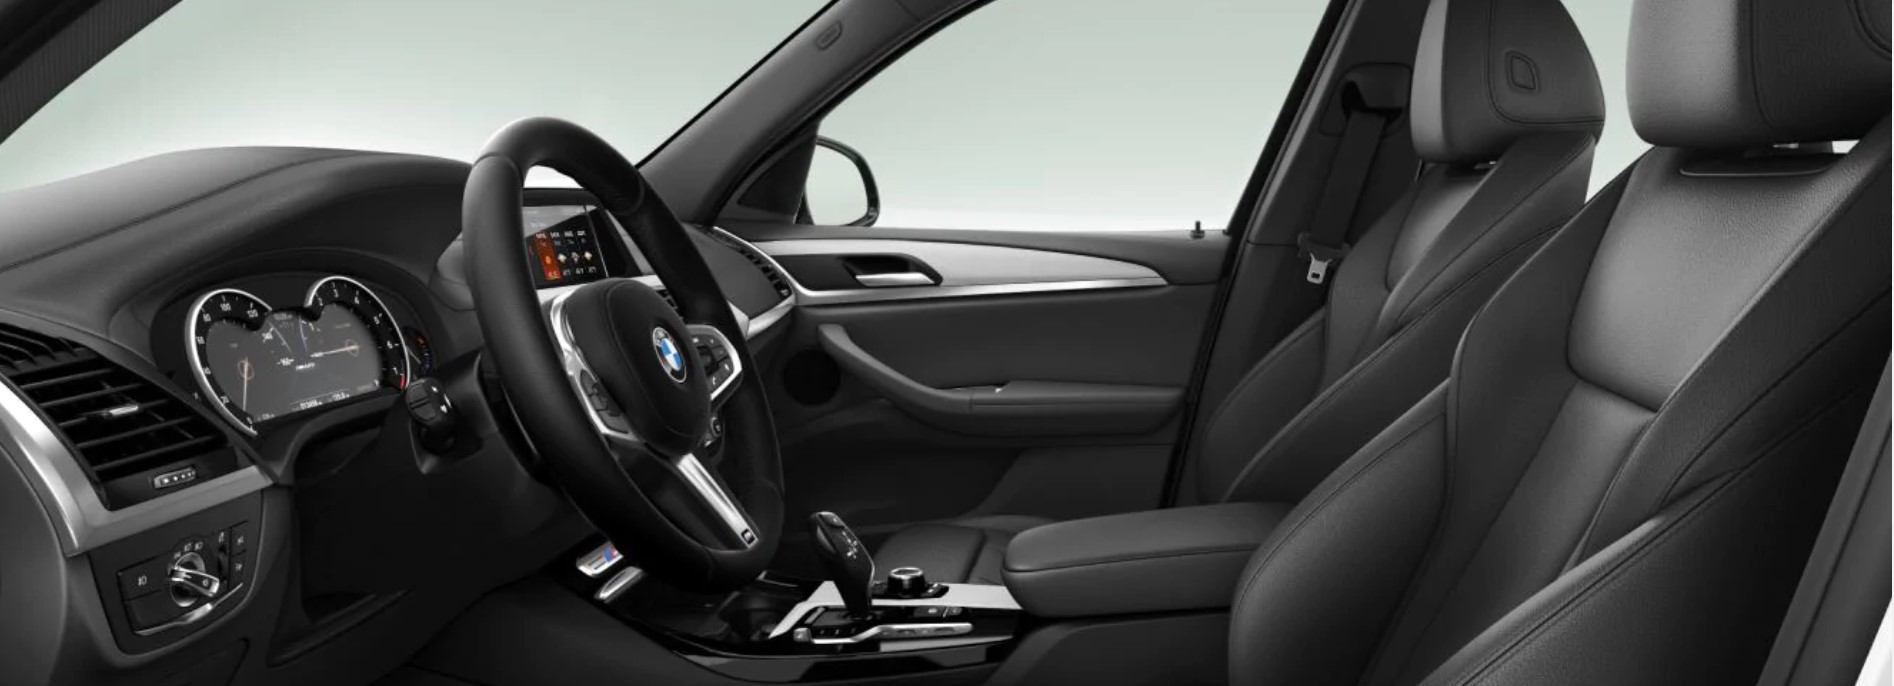 2019 BMW X3 M40i Black Interior